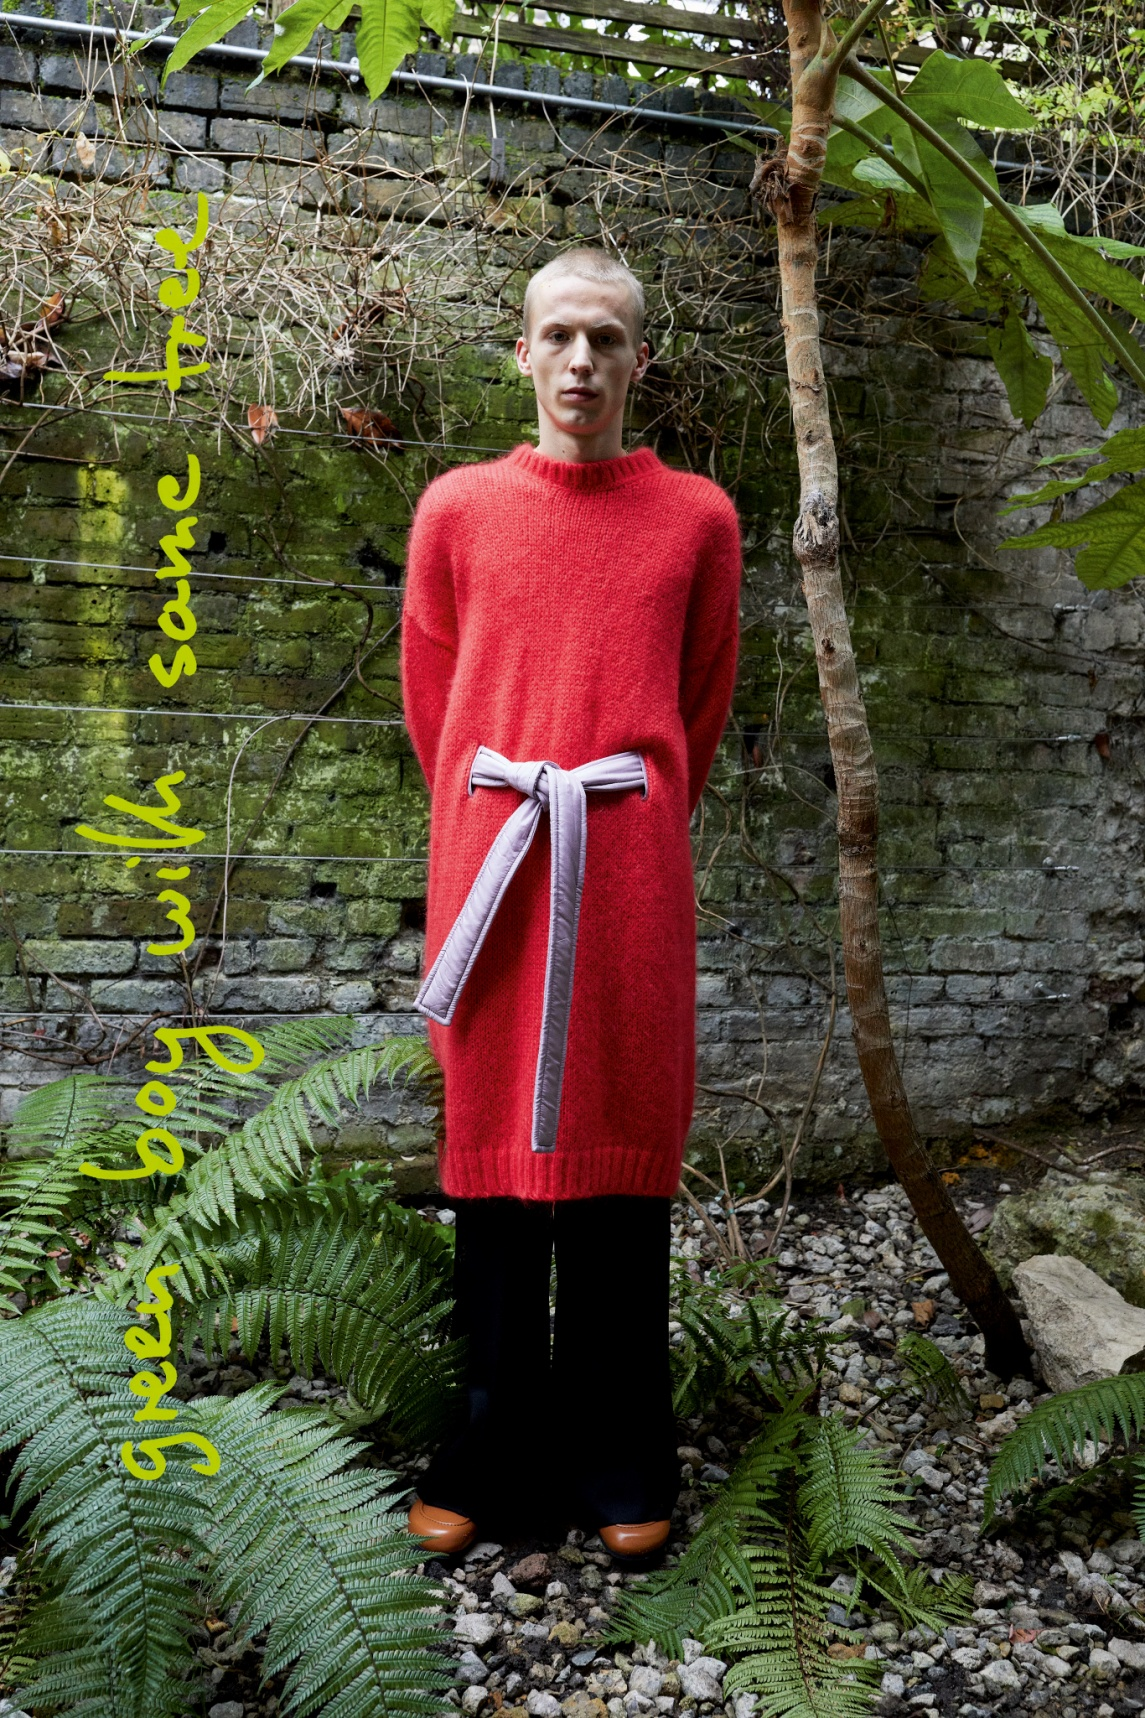 00029-JW-Anderson-FW-21 JW Anderson Paris Mens red sweater vogue.jpg